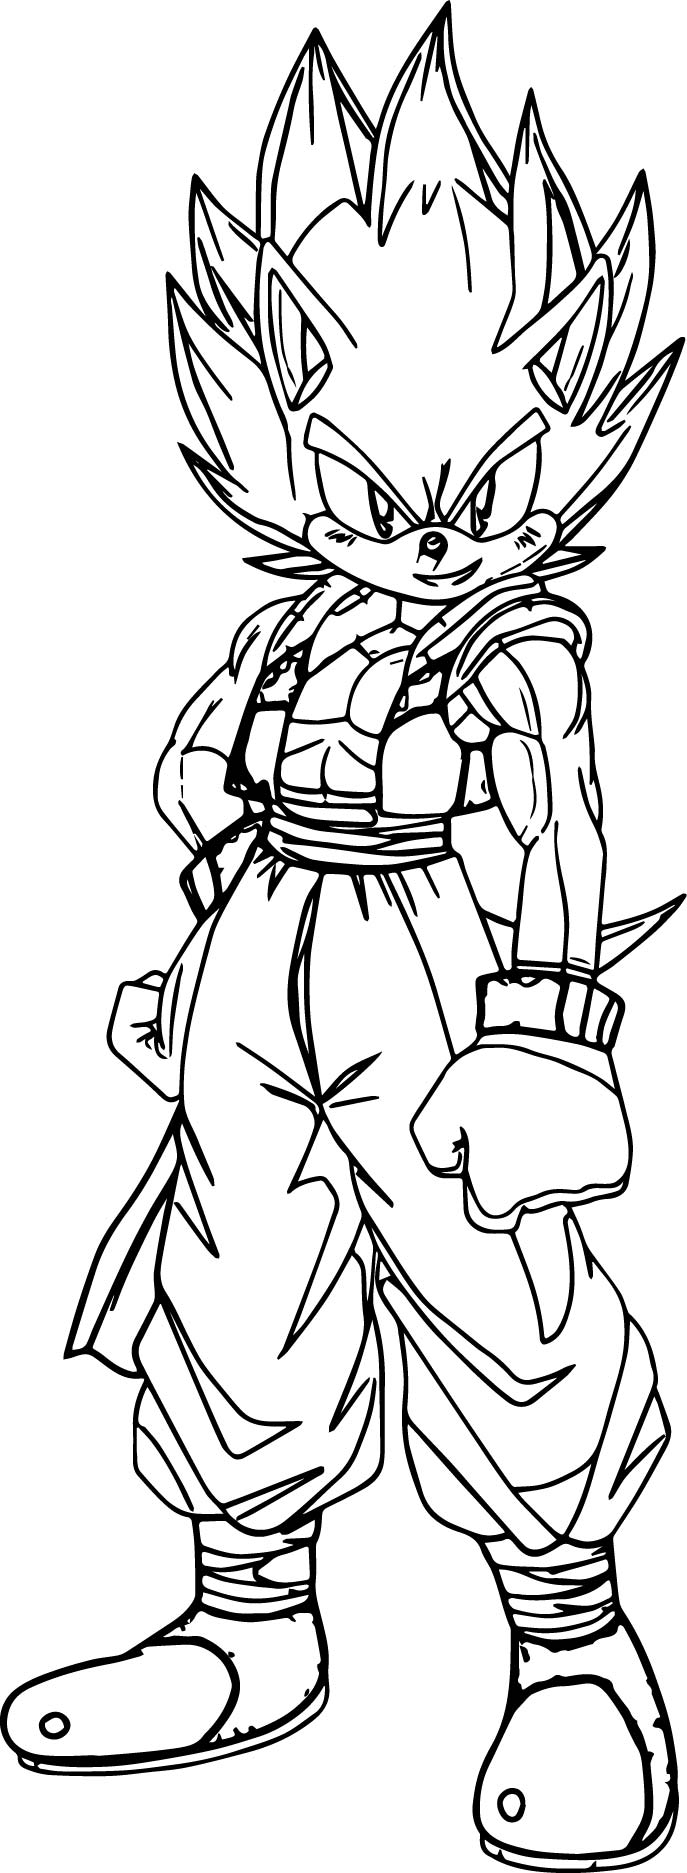 goku sonic coloring page